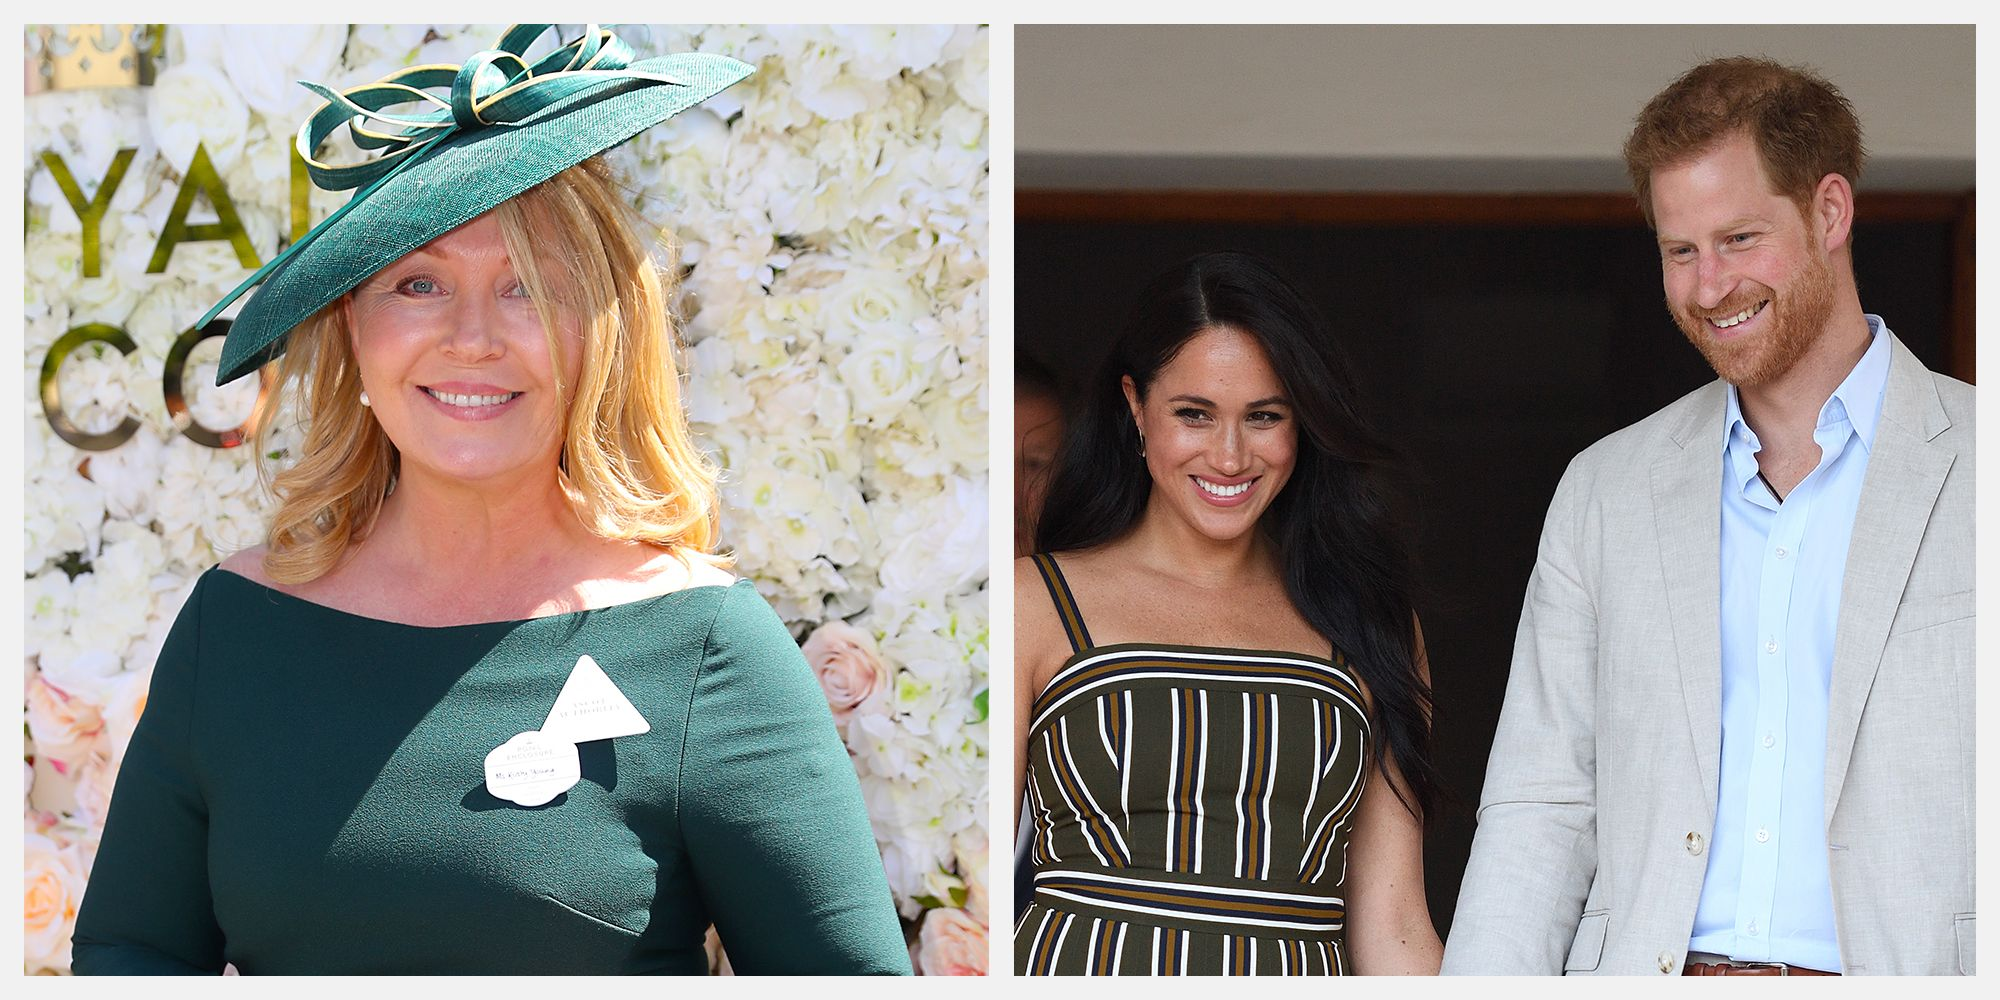 TV Presenter Kirsty Young Was the First Person Meghan Markle and Prince Harry Asked to Join Their Foundation